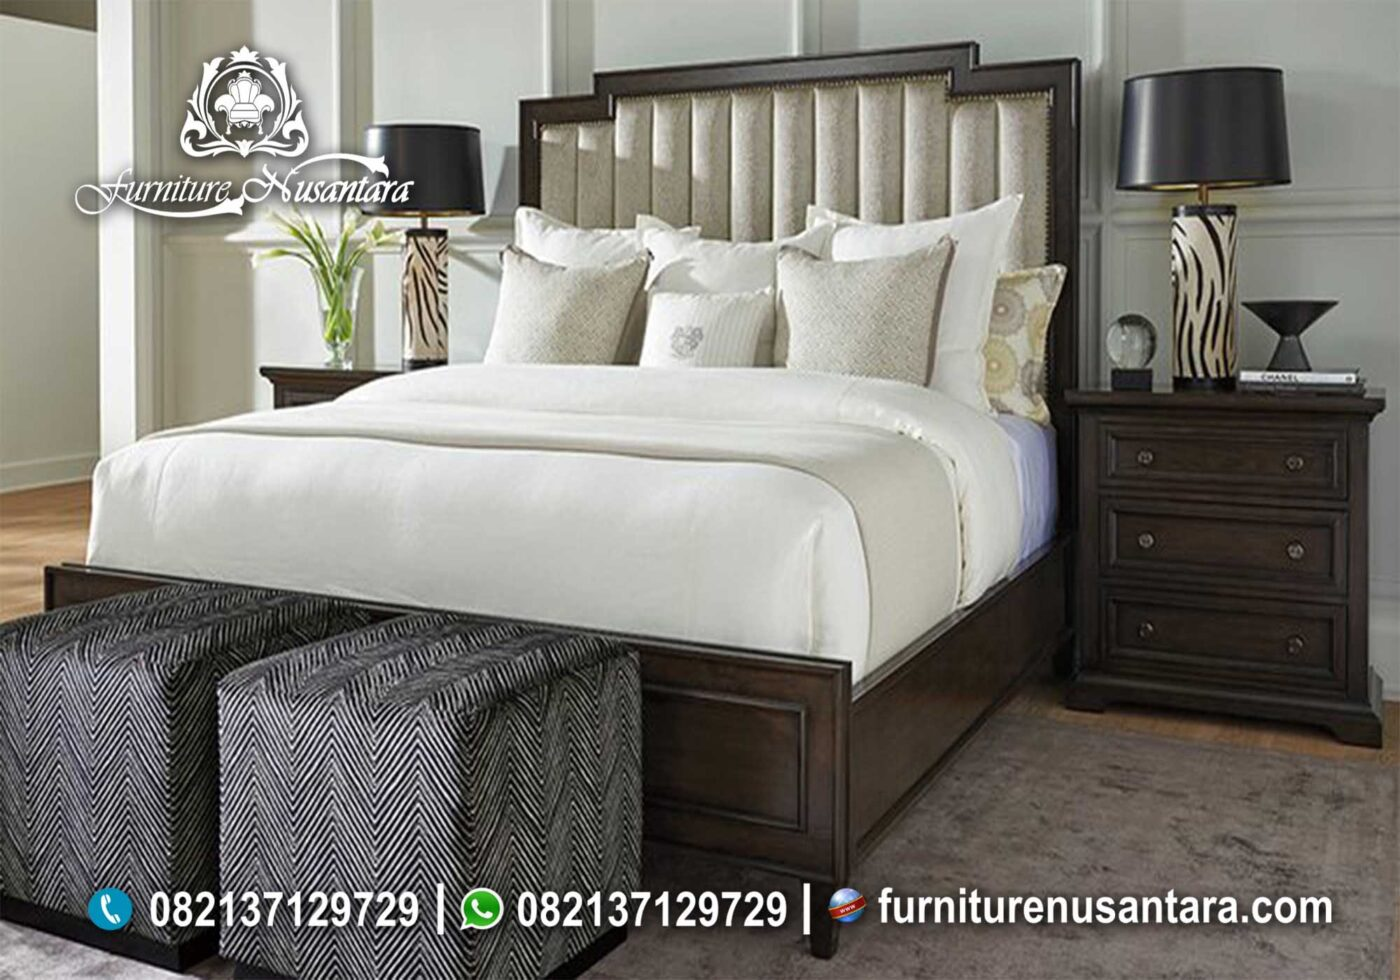 Kamar Set Minimalis KS-63, Furniture Nusantara